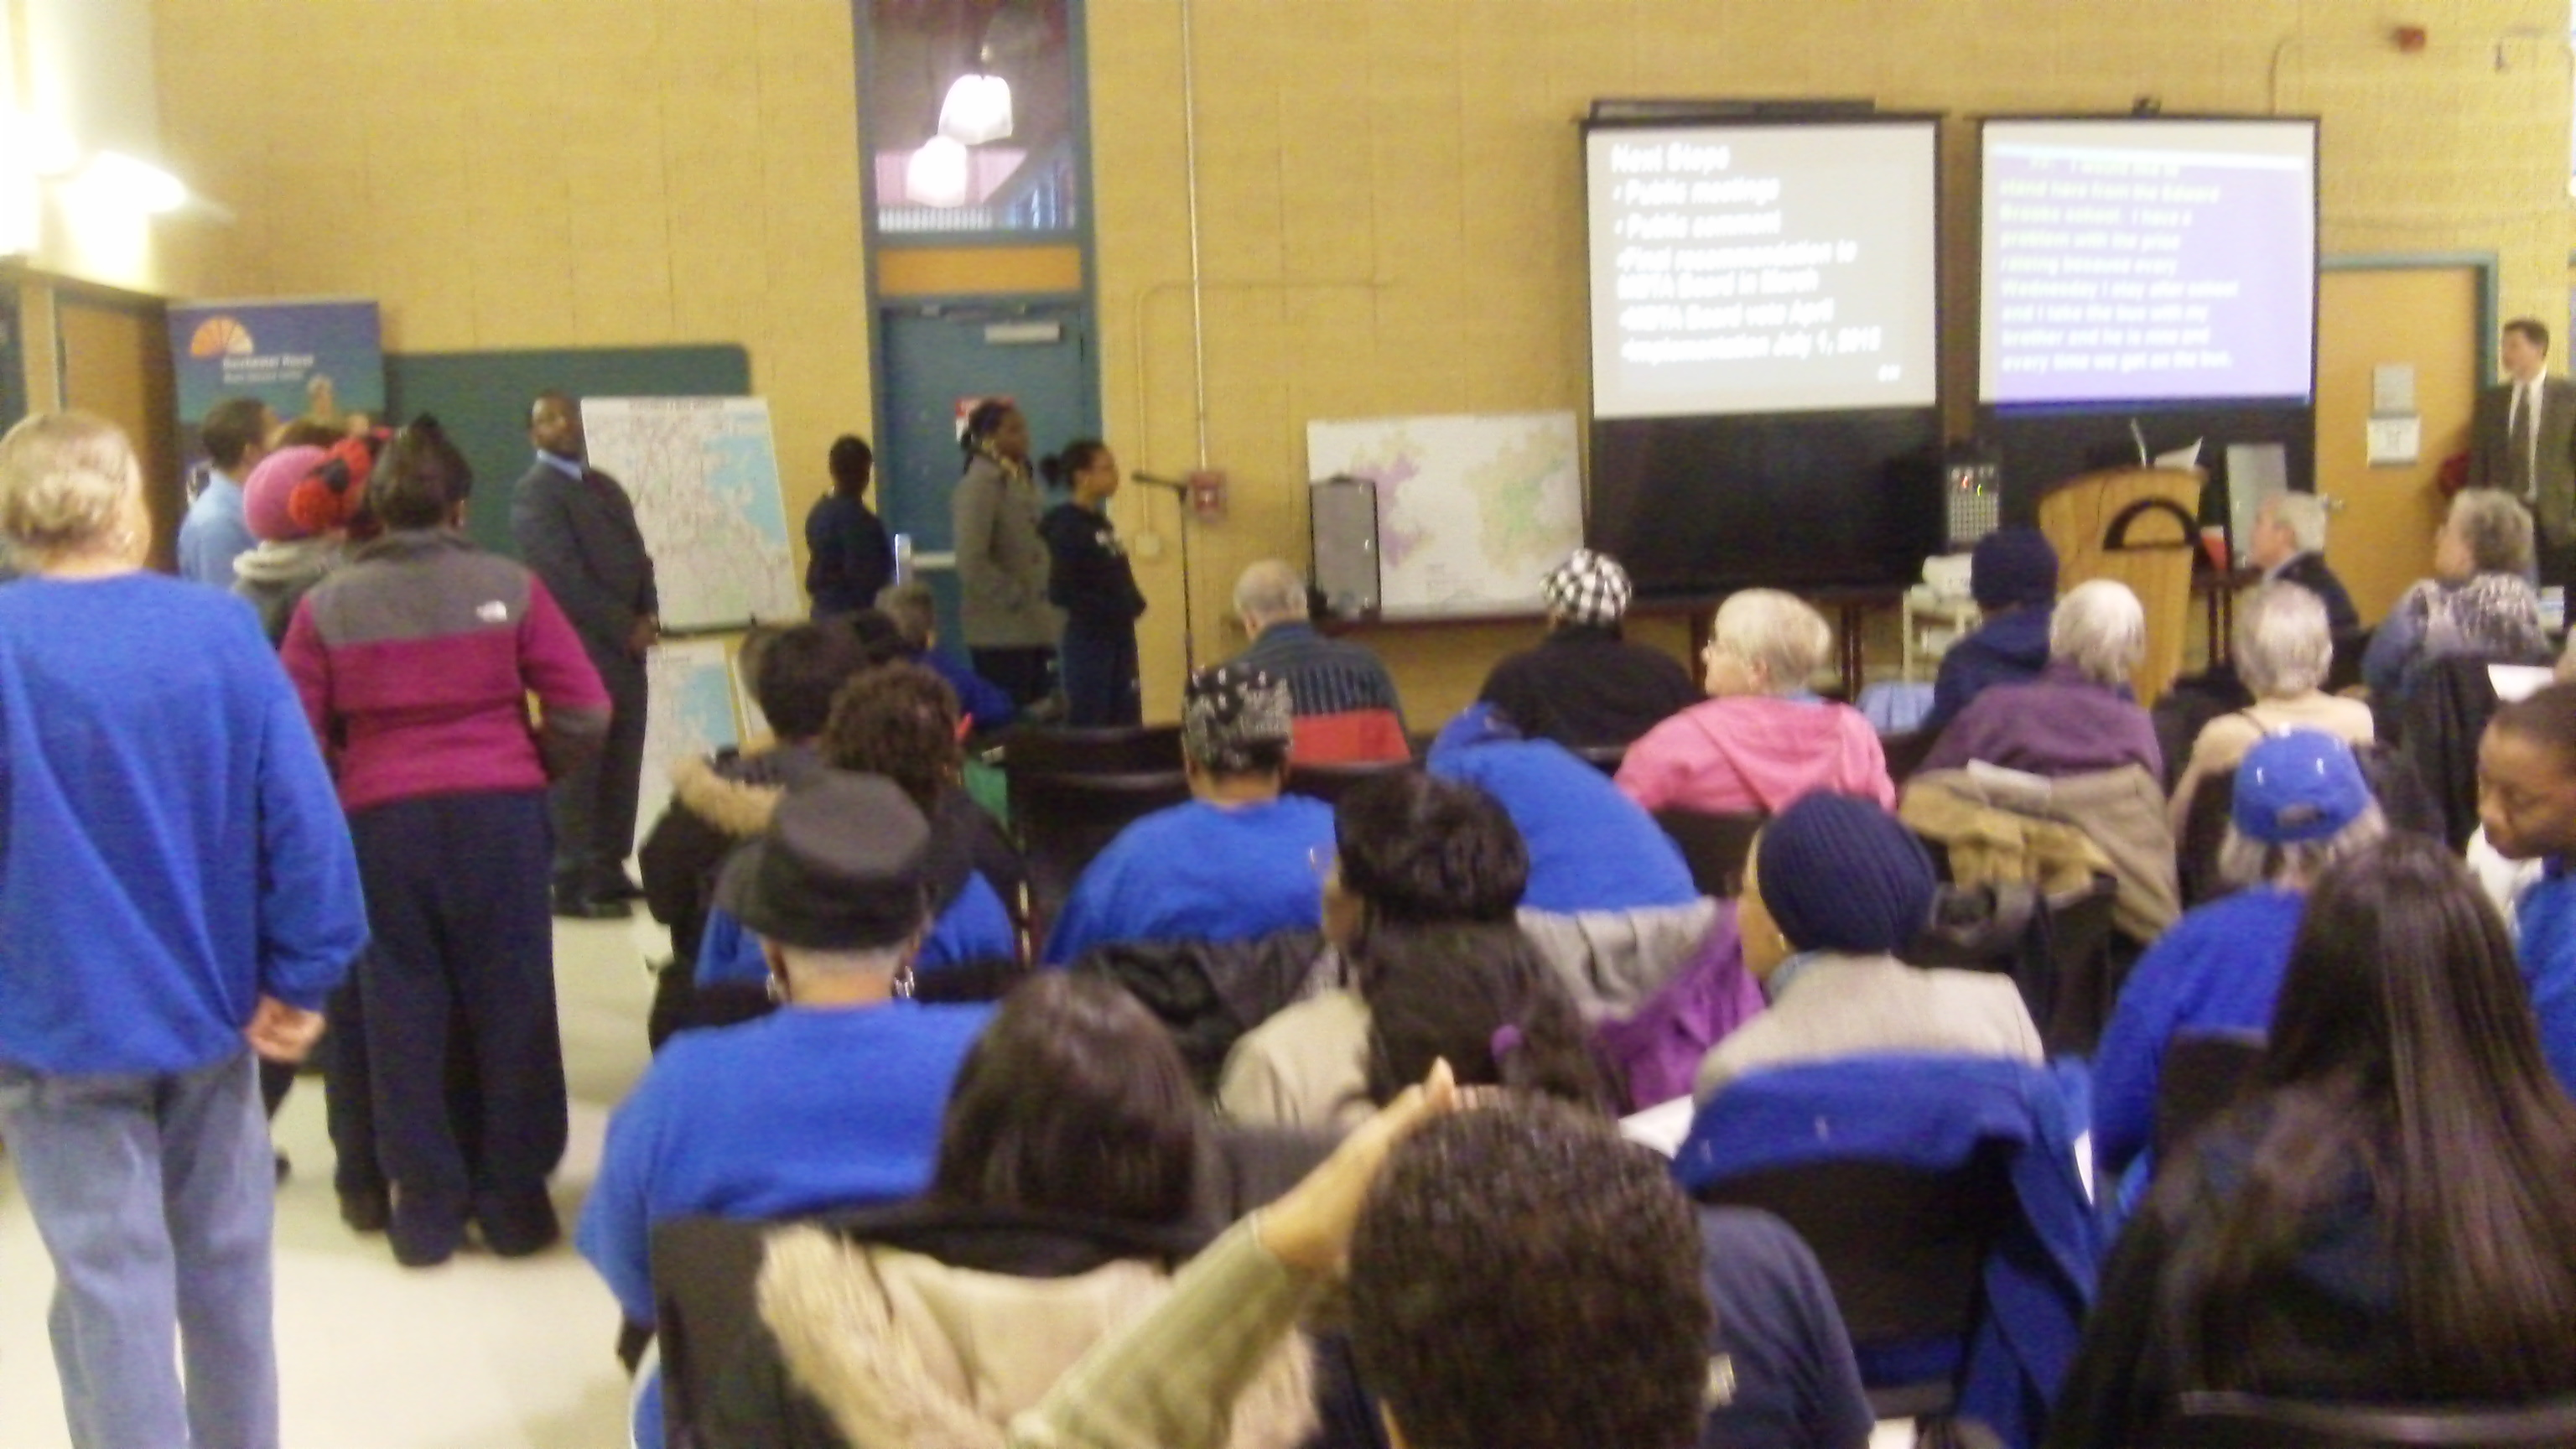 Residents speak February 2 at the MBTA community meeting at the Dorchester House about proposed changes